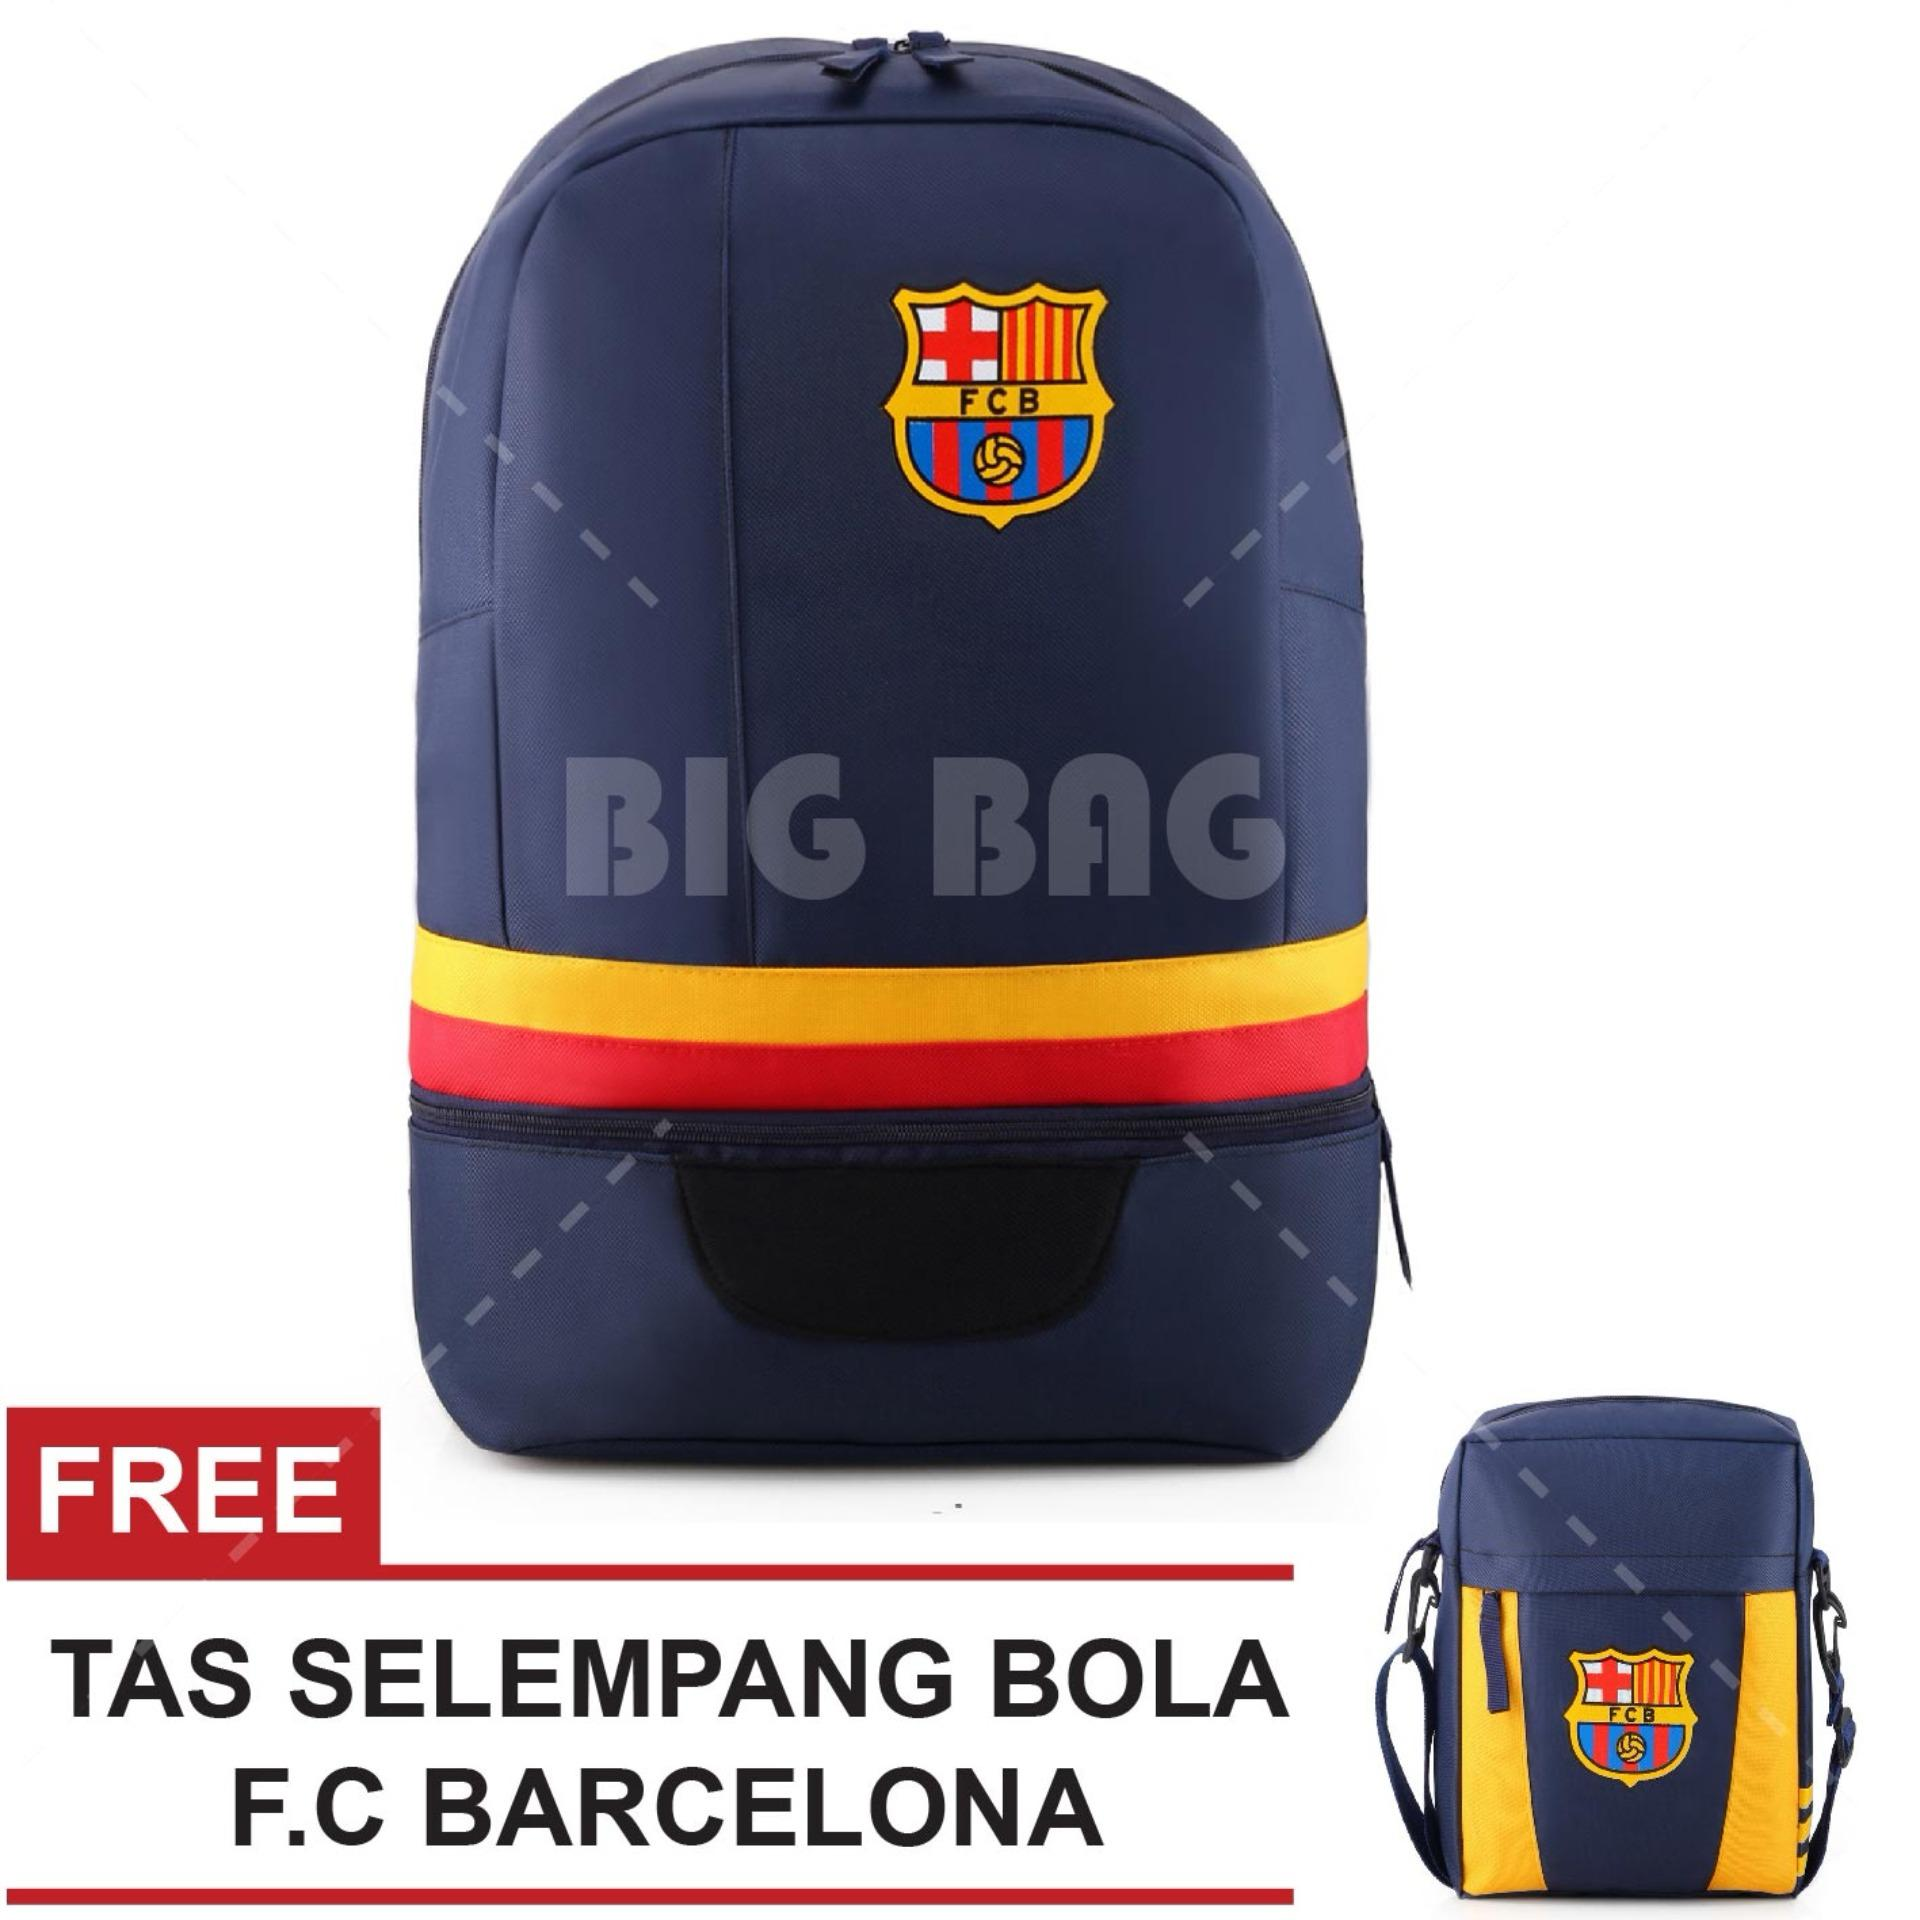 Jual Tas Ransel Bola Pria Fc Barcelona Laptop Backpack Men Soccer Editions Navy Free Tas Selempang Fc Barcelona Navy Branded Original